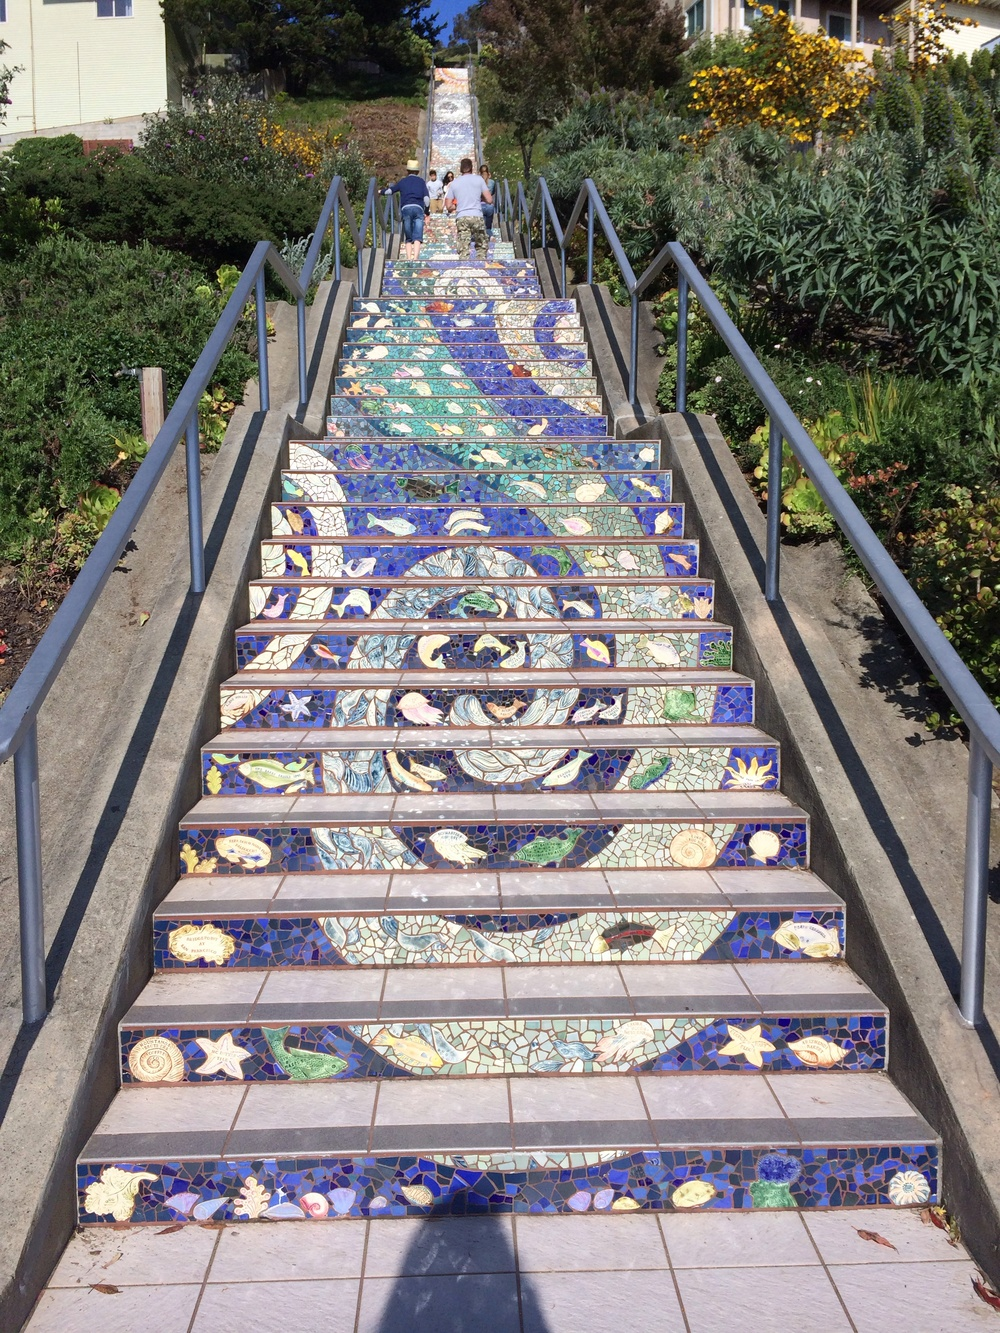 The stairs are decorated with an eye catching mosaic.  Donors' names are included on some tiles.  It was a nice little workout to make it to the top.